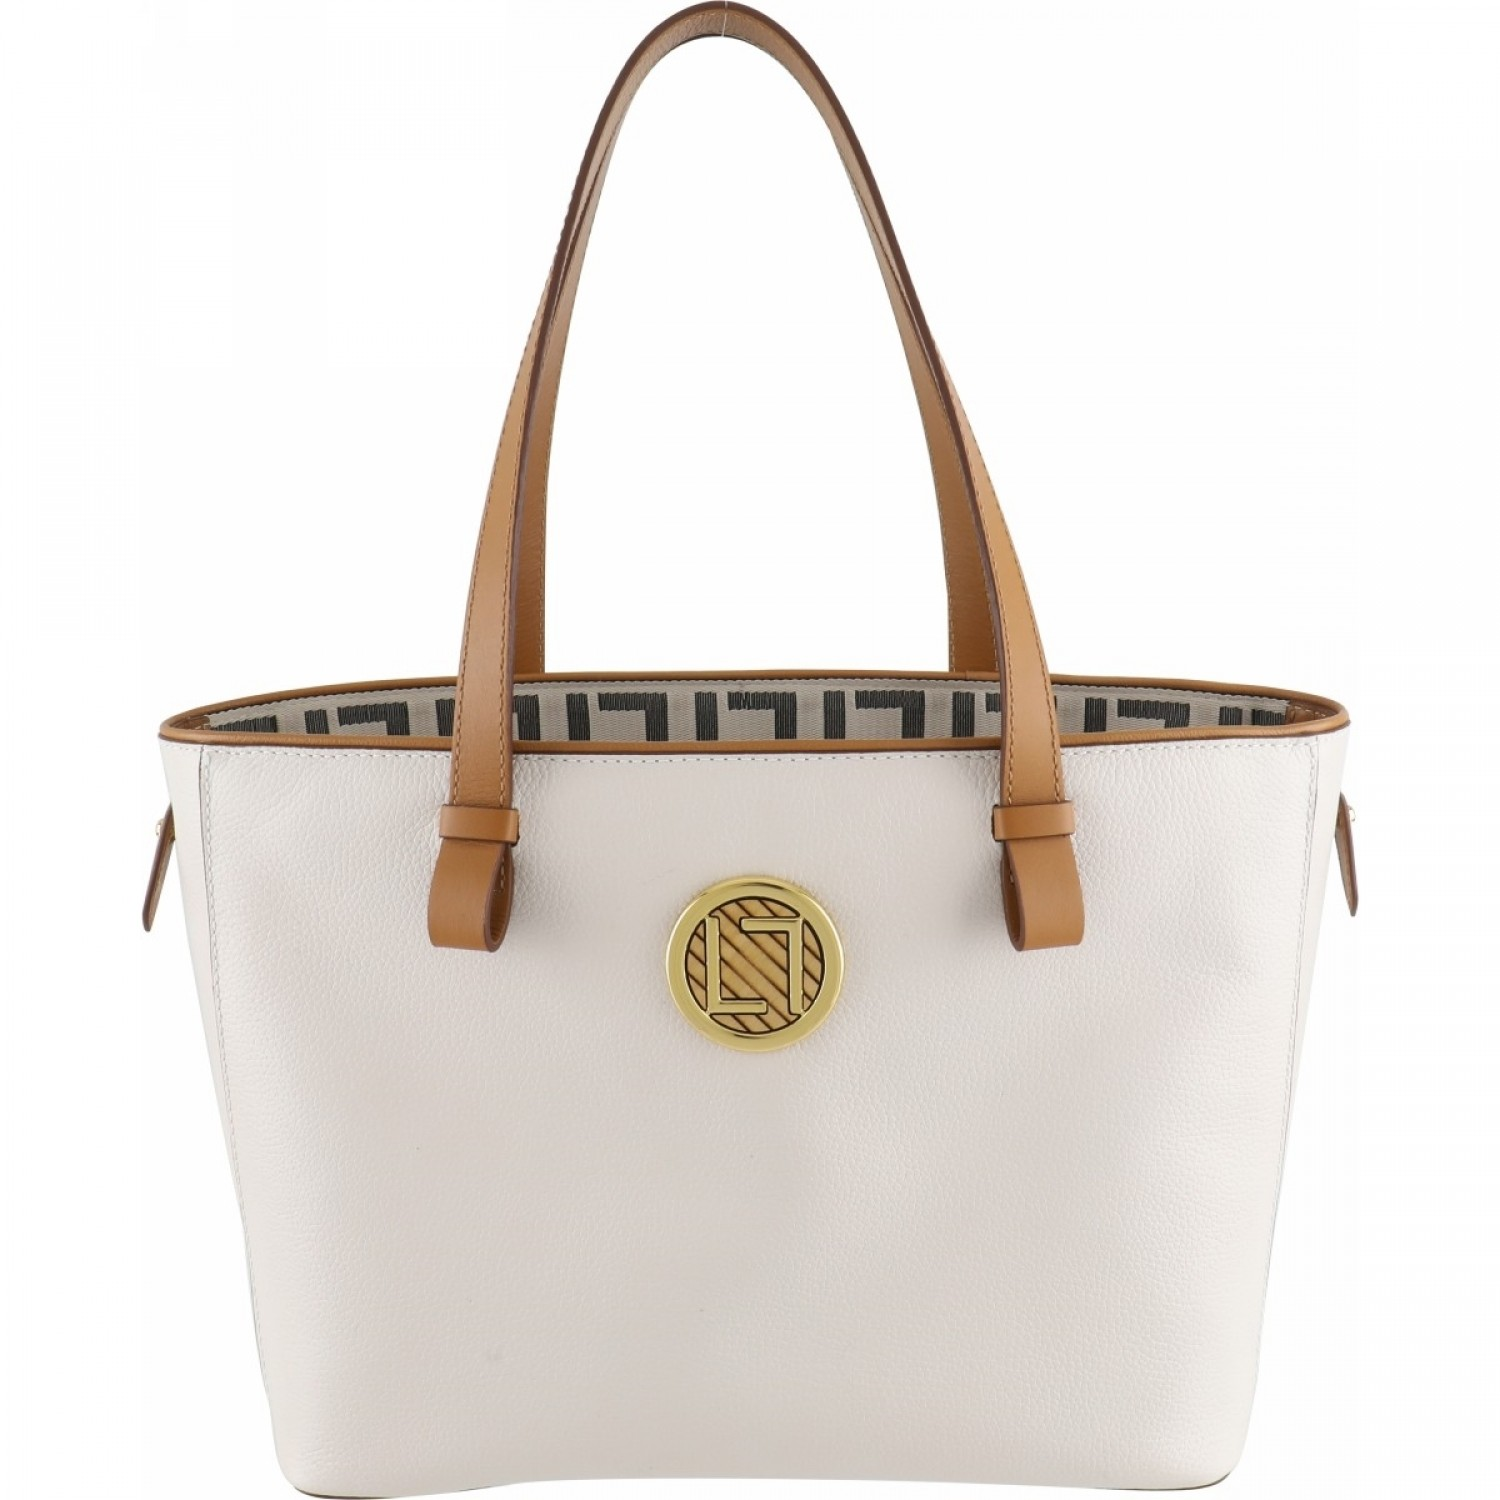 BOLSA LUZ DA LUA SHOPPING BAG NEW RIDGE OFF WHITE